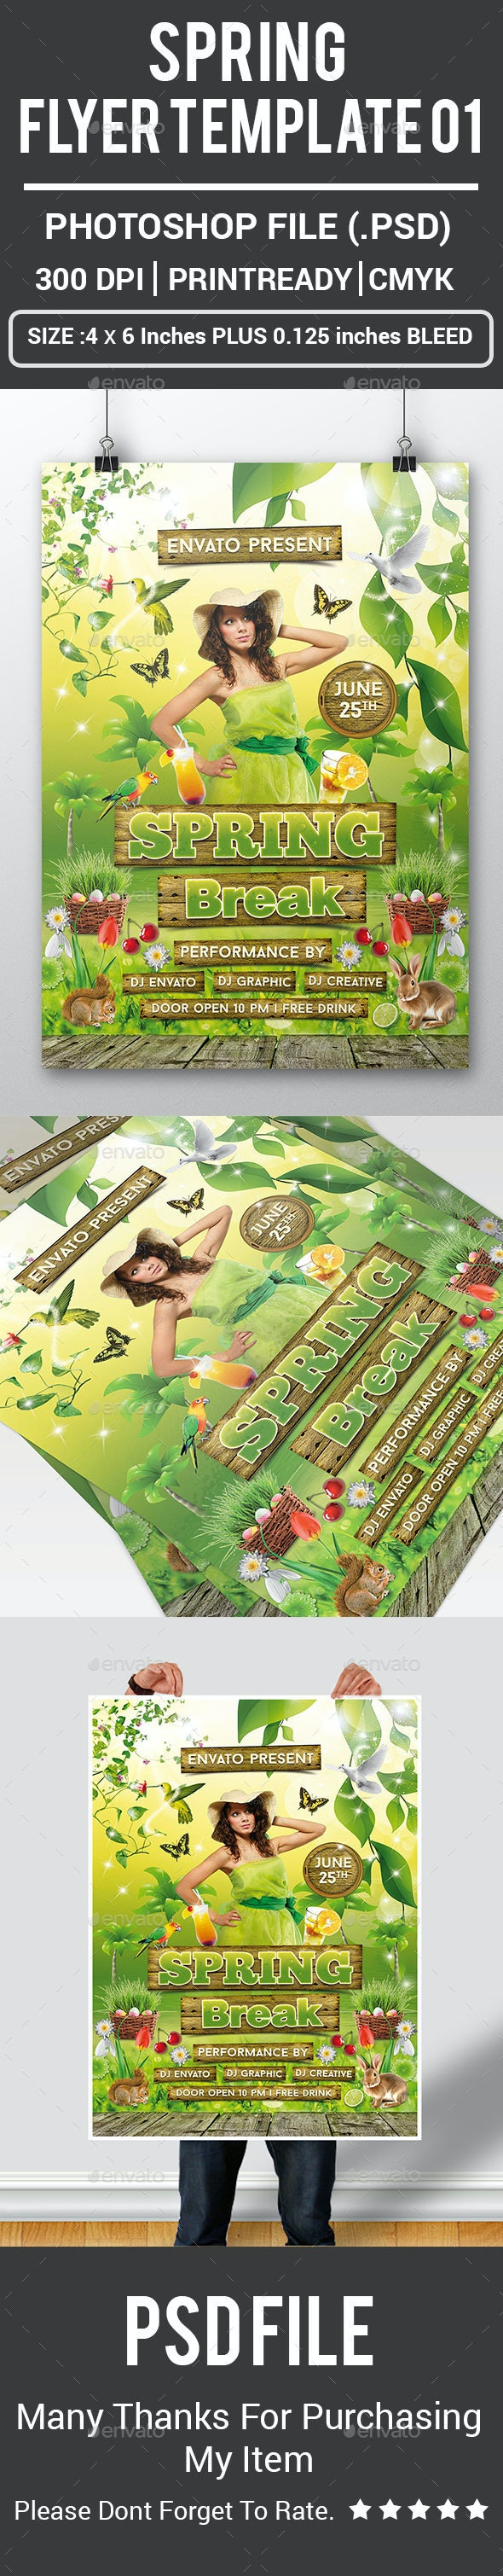 Spring Flyer Template 01 - Clubs & Parties Events